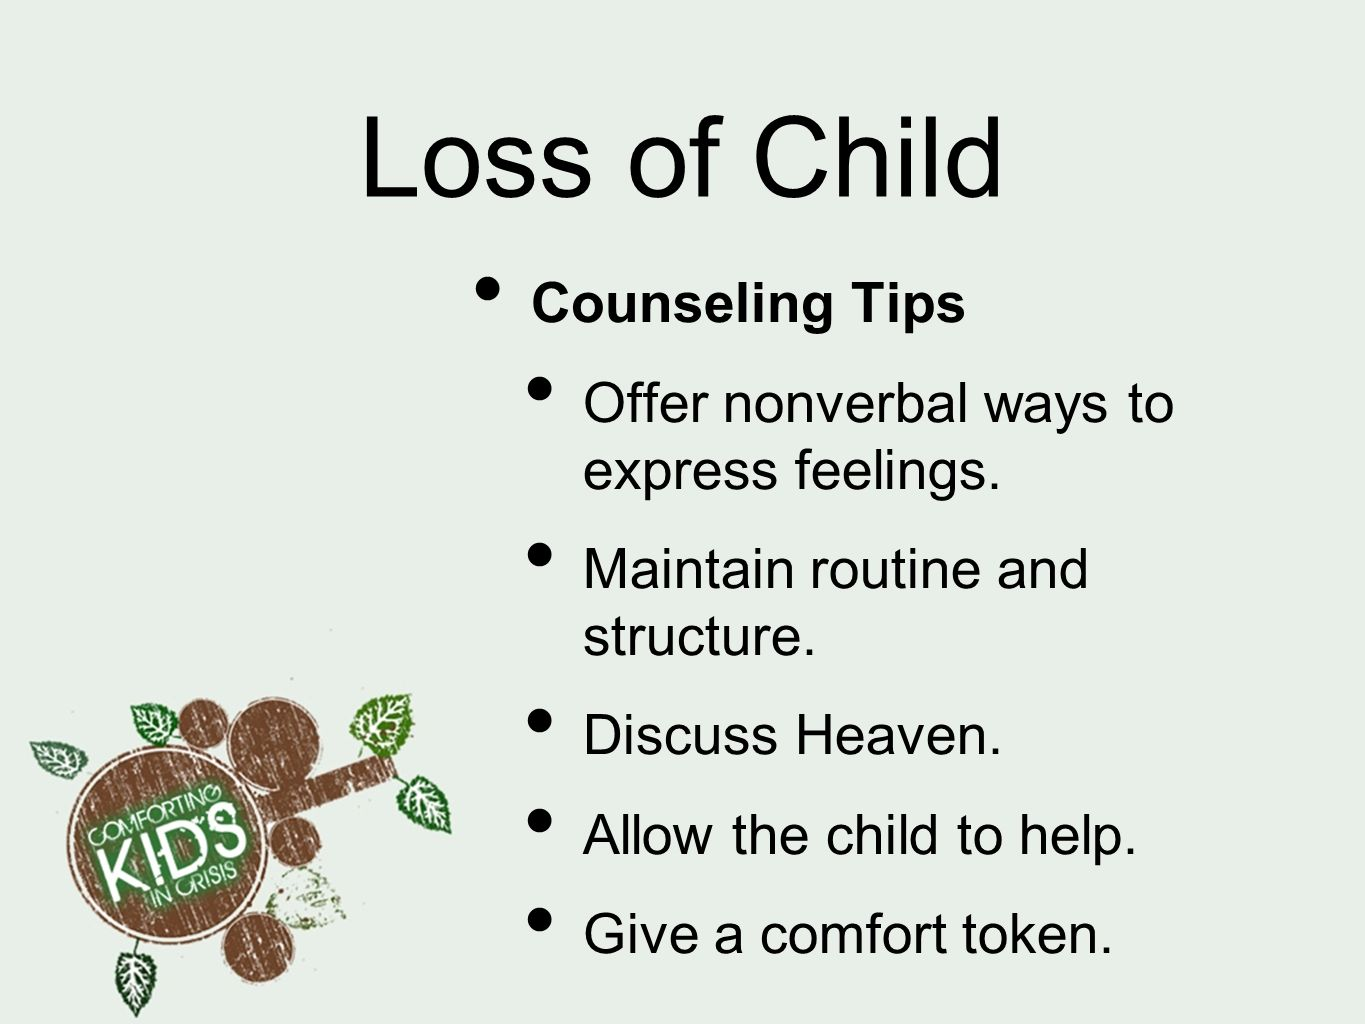 Loss of Child Counseling Tips Offer nonverbal ways to express feelings. Maintain routine and structure. Discuss Heaven. Allow the child to help. Give